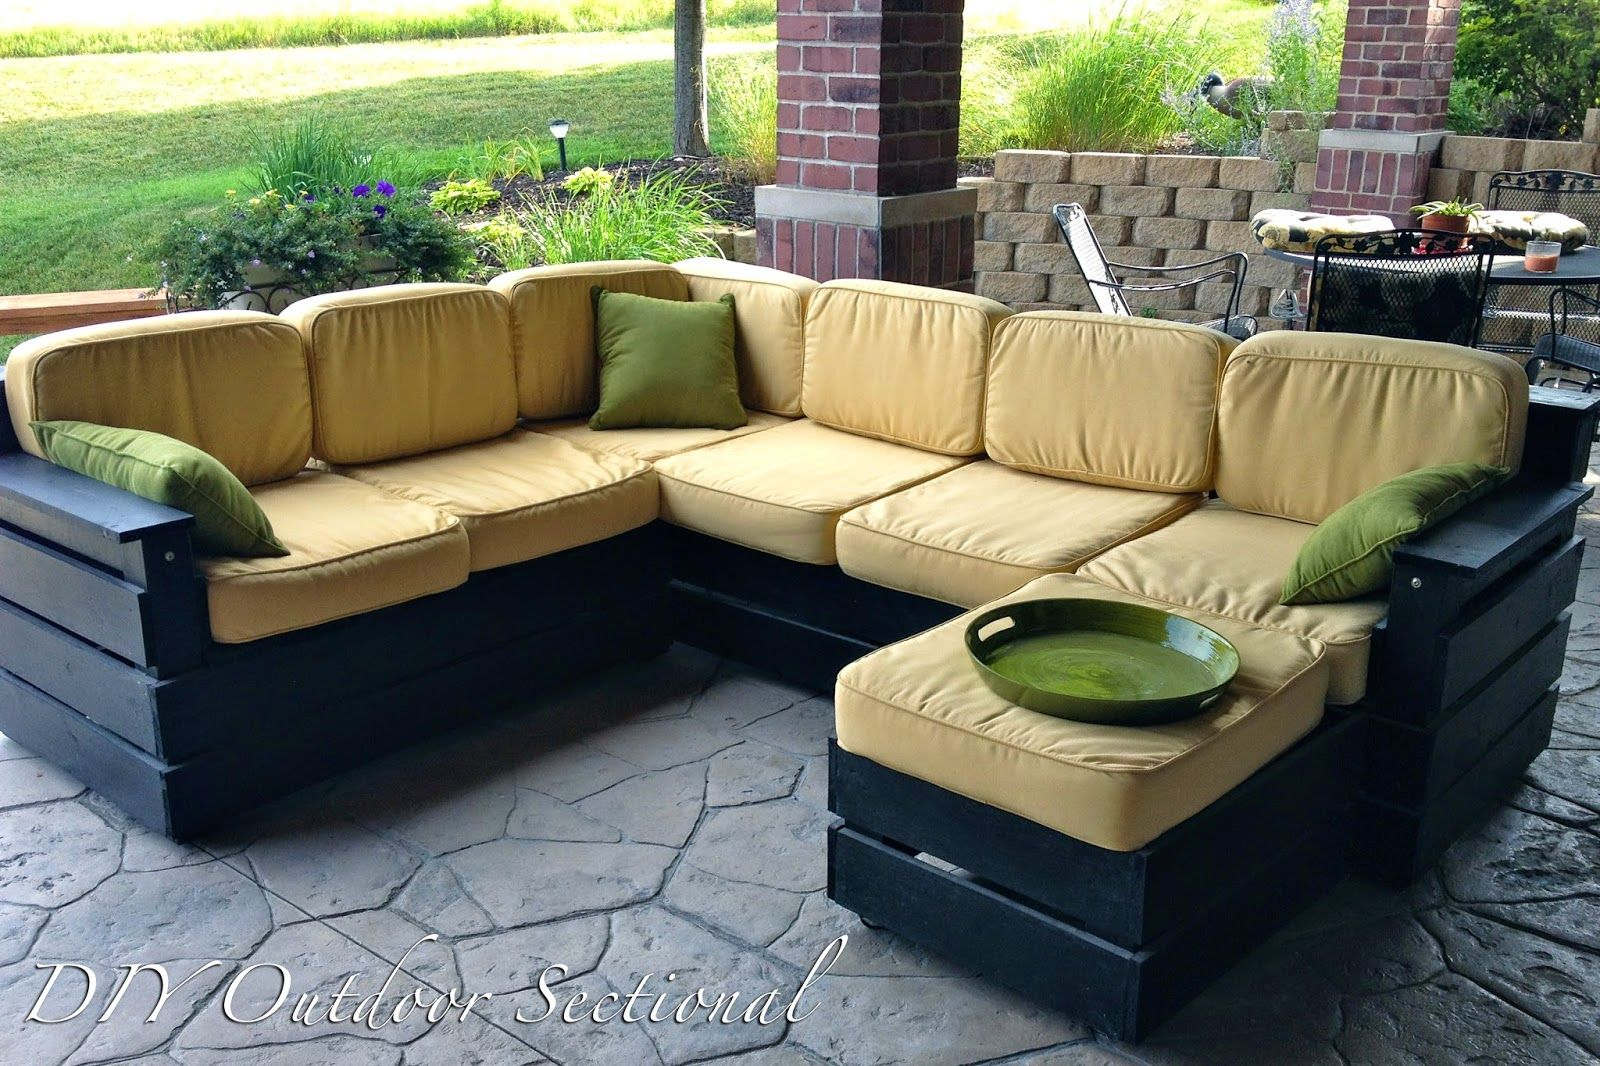 Pallet patio furniture cushions - Diy Outdoor Sectional Build It Yourself Out Of Regular Wood From A Home Improvement Store